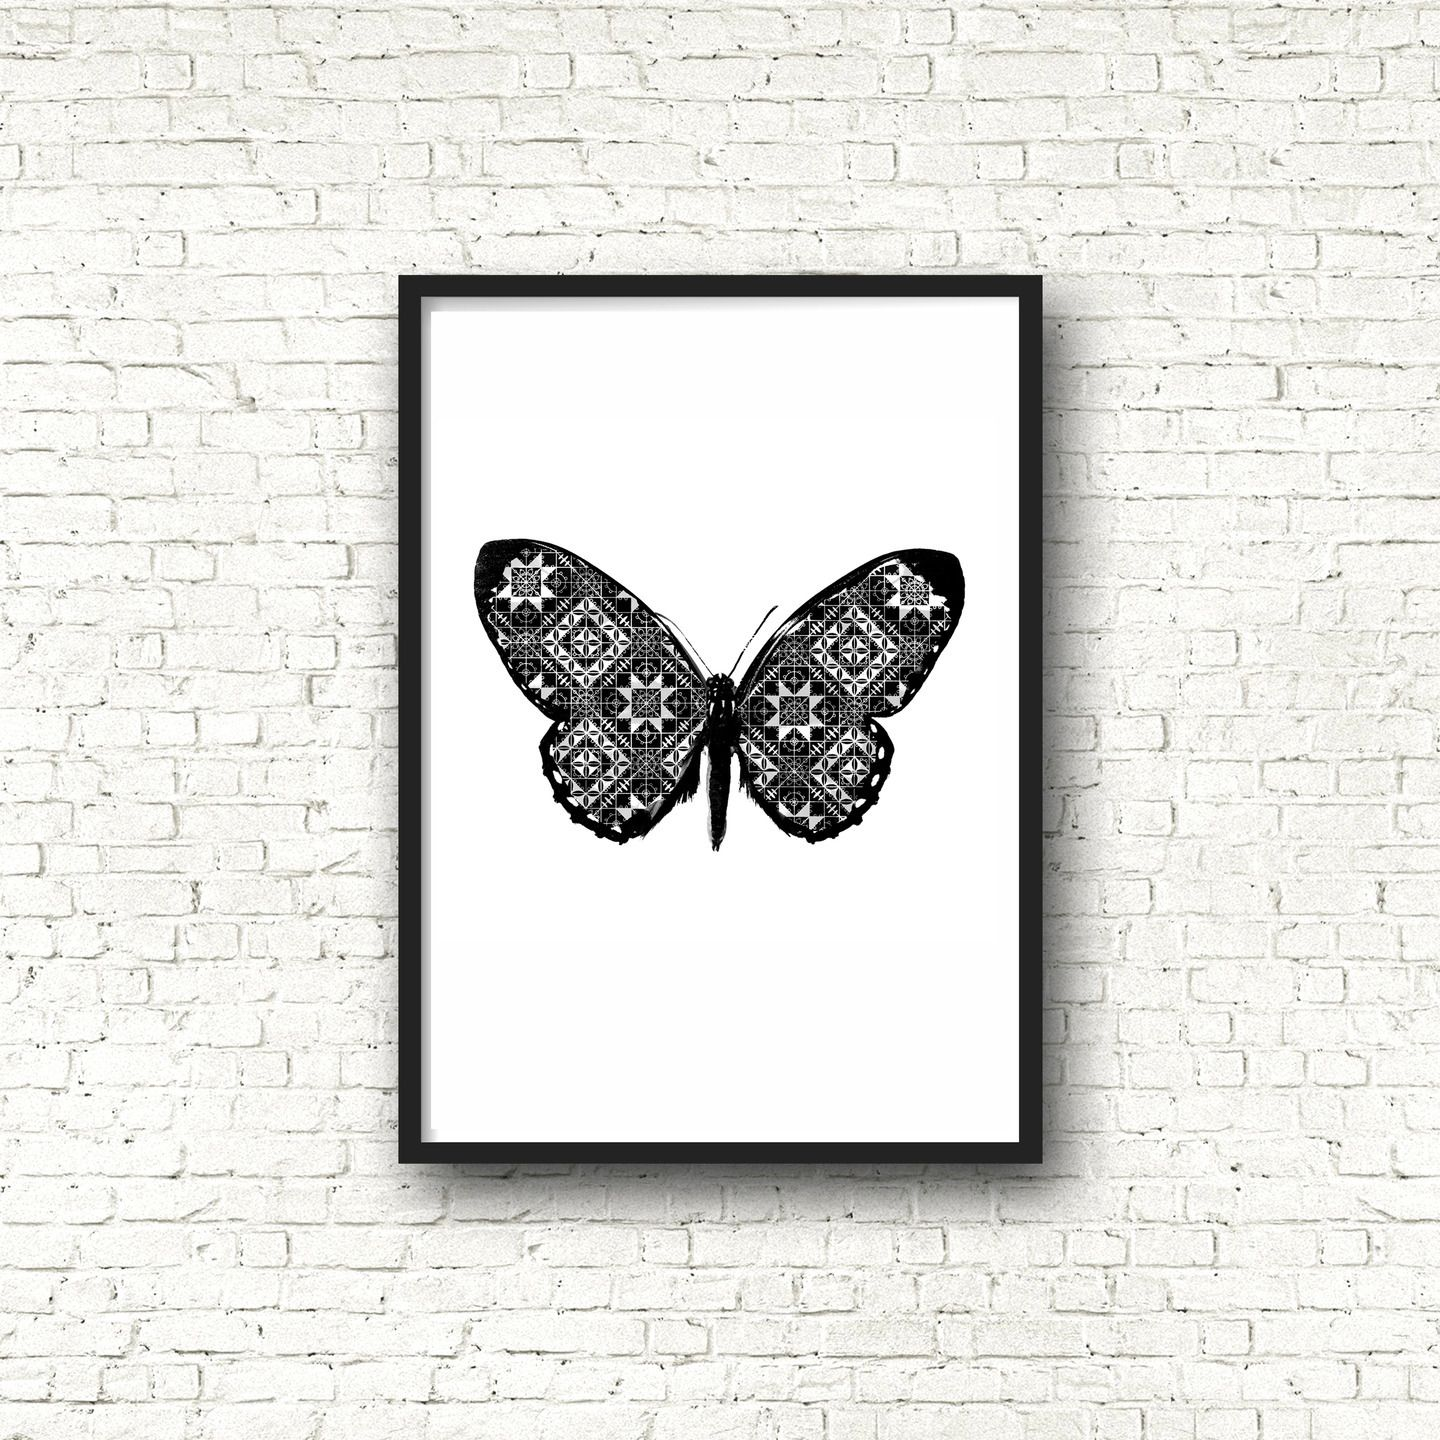 affiche poster noir et blanc graphique papillon format a4 affiches illustrations posters par. Black Bedroom Furniture Sets. Home Design Ideas